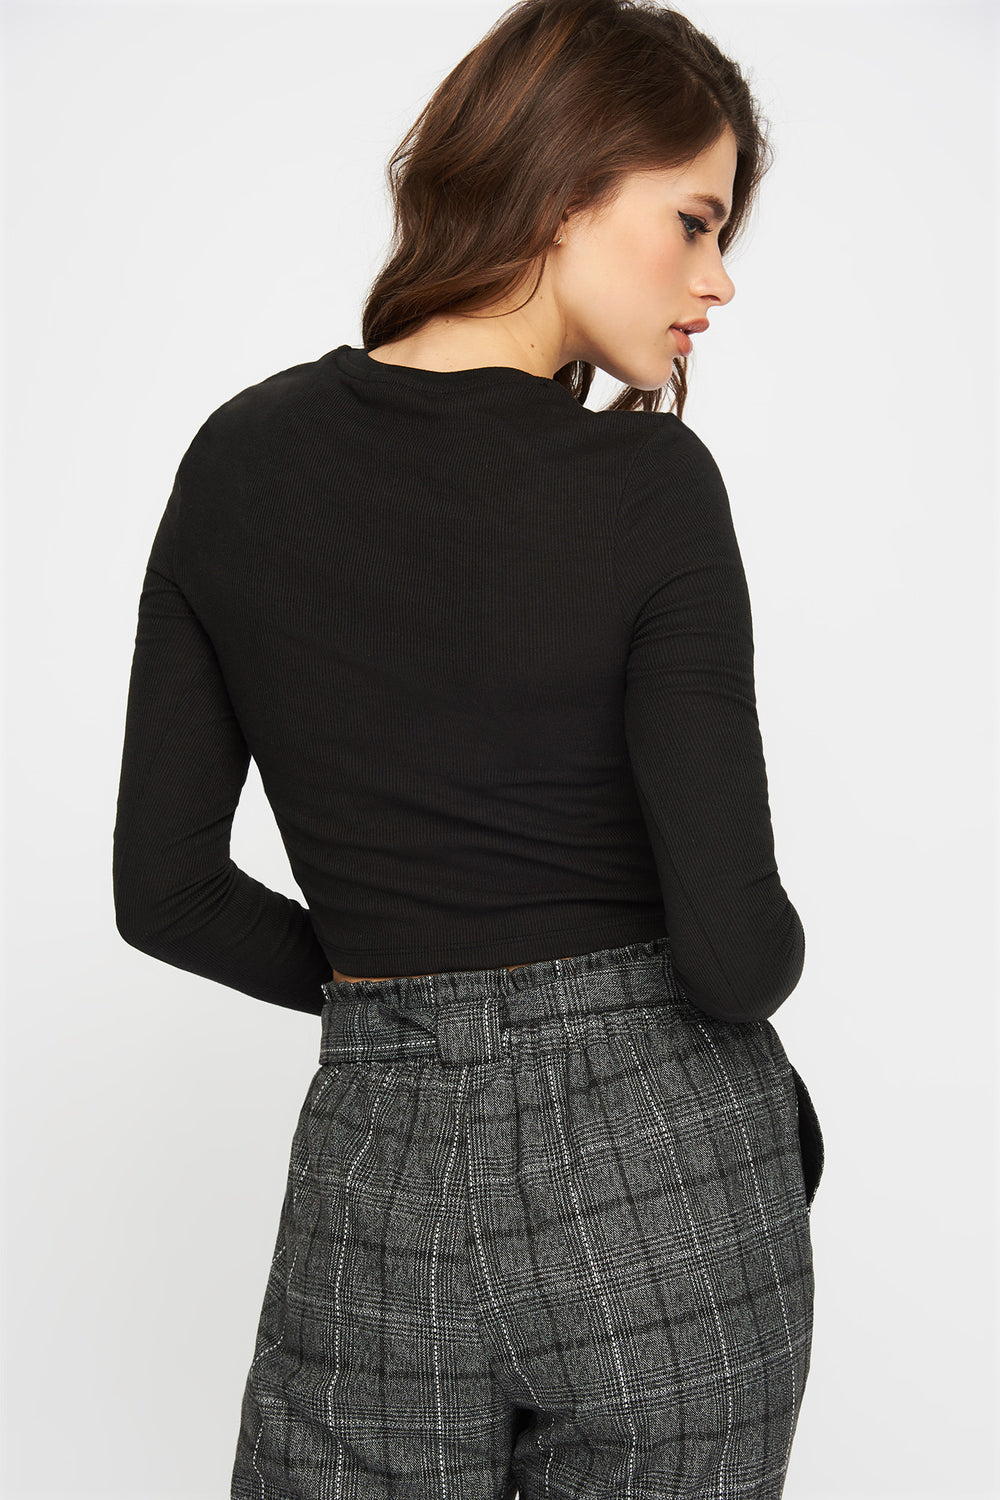 Ribbed Cropped Long Sleeve Black